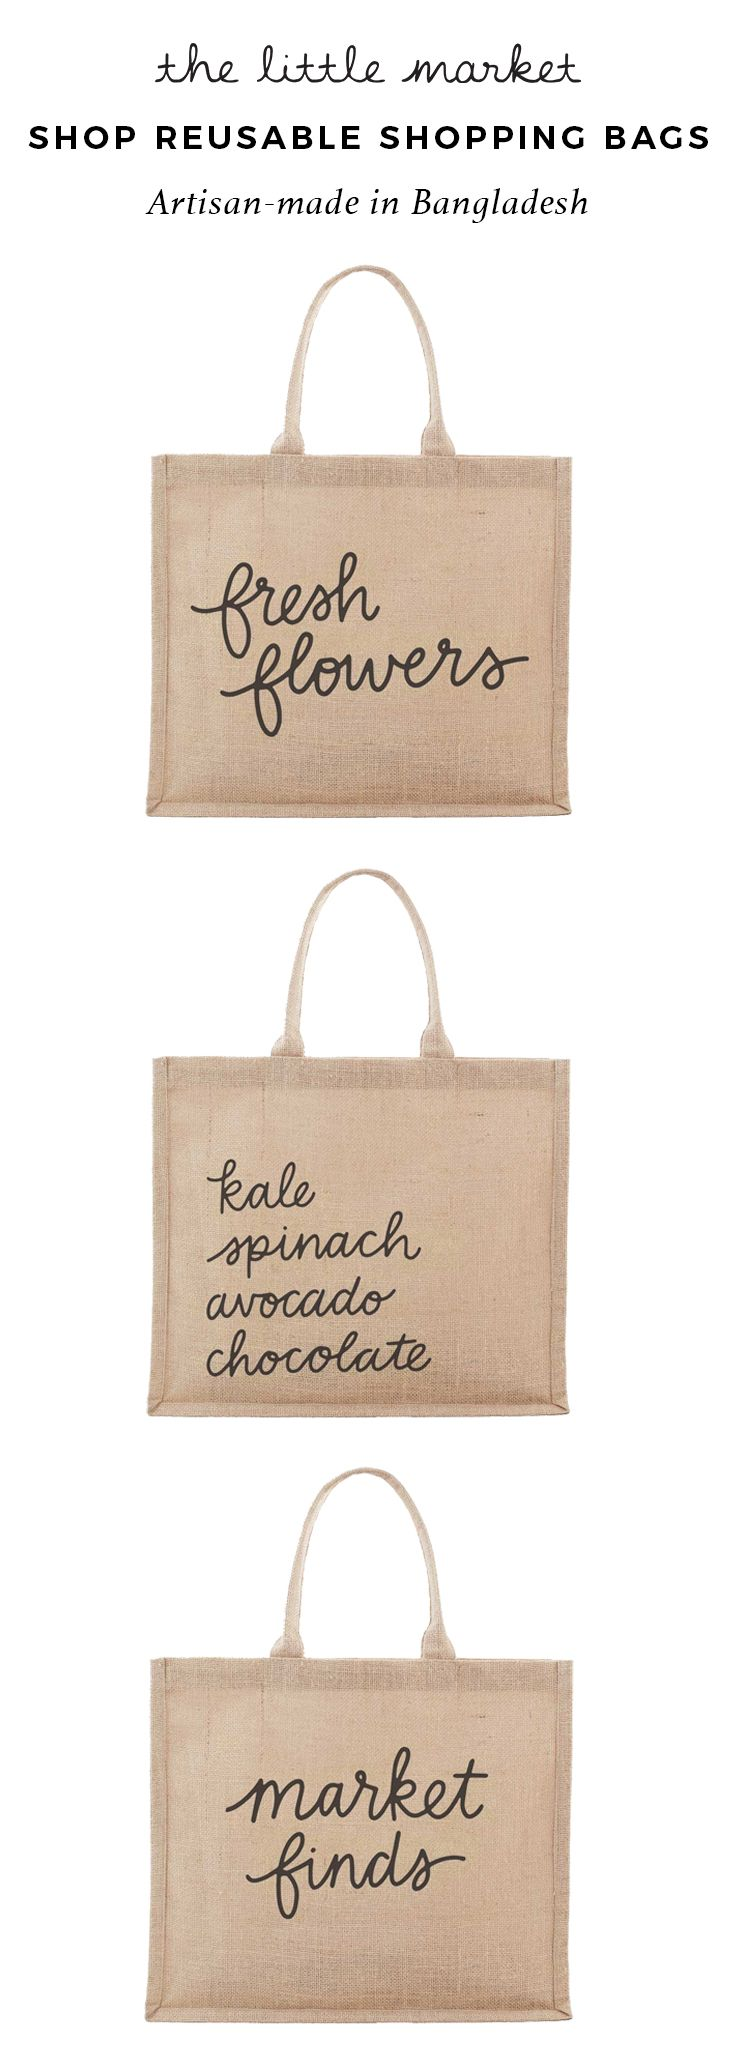 Download With These Bags You Won T Need A Reminder To Bring Your Reusable Bag To The Market These Handmade B Jute Shopping Bags Reusable Bags Design Bags Diy Handbags